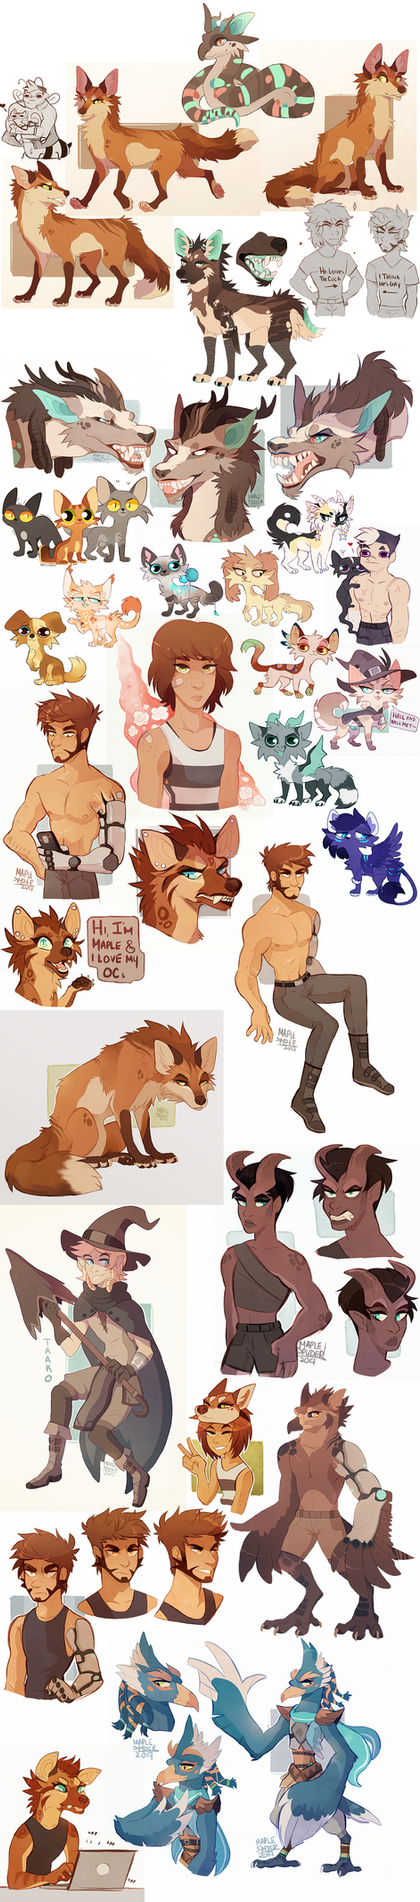 Sketchdump XII by MapleSpyder